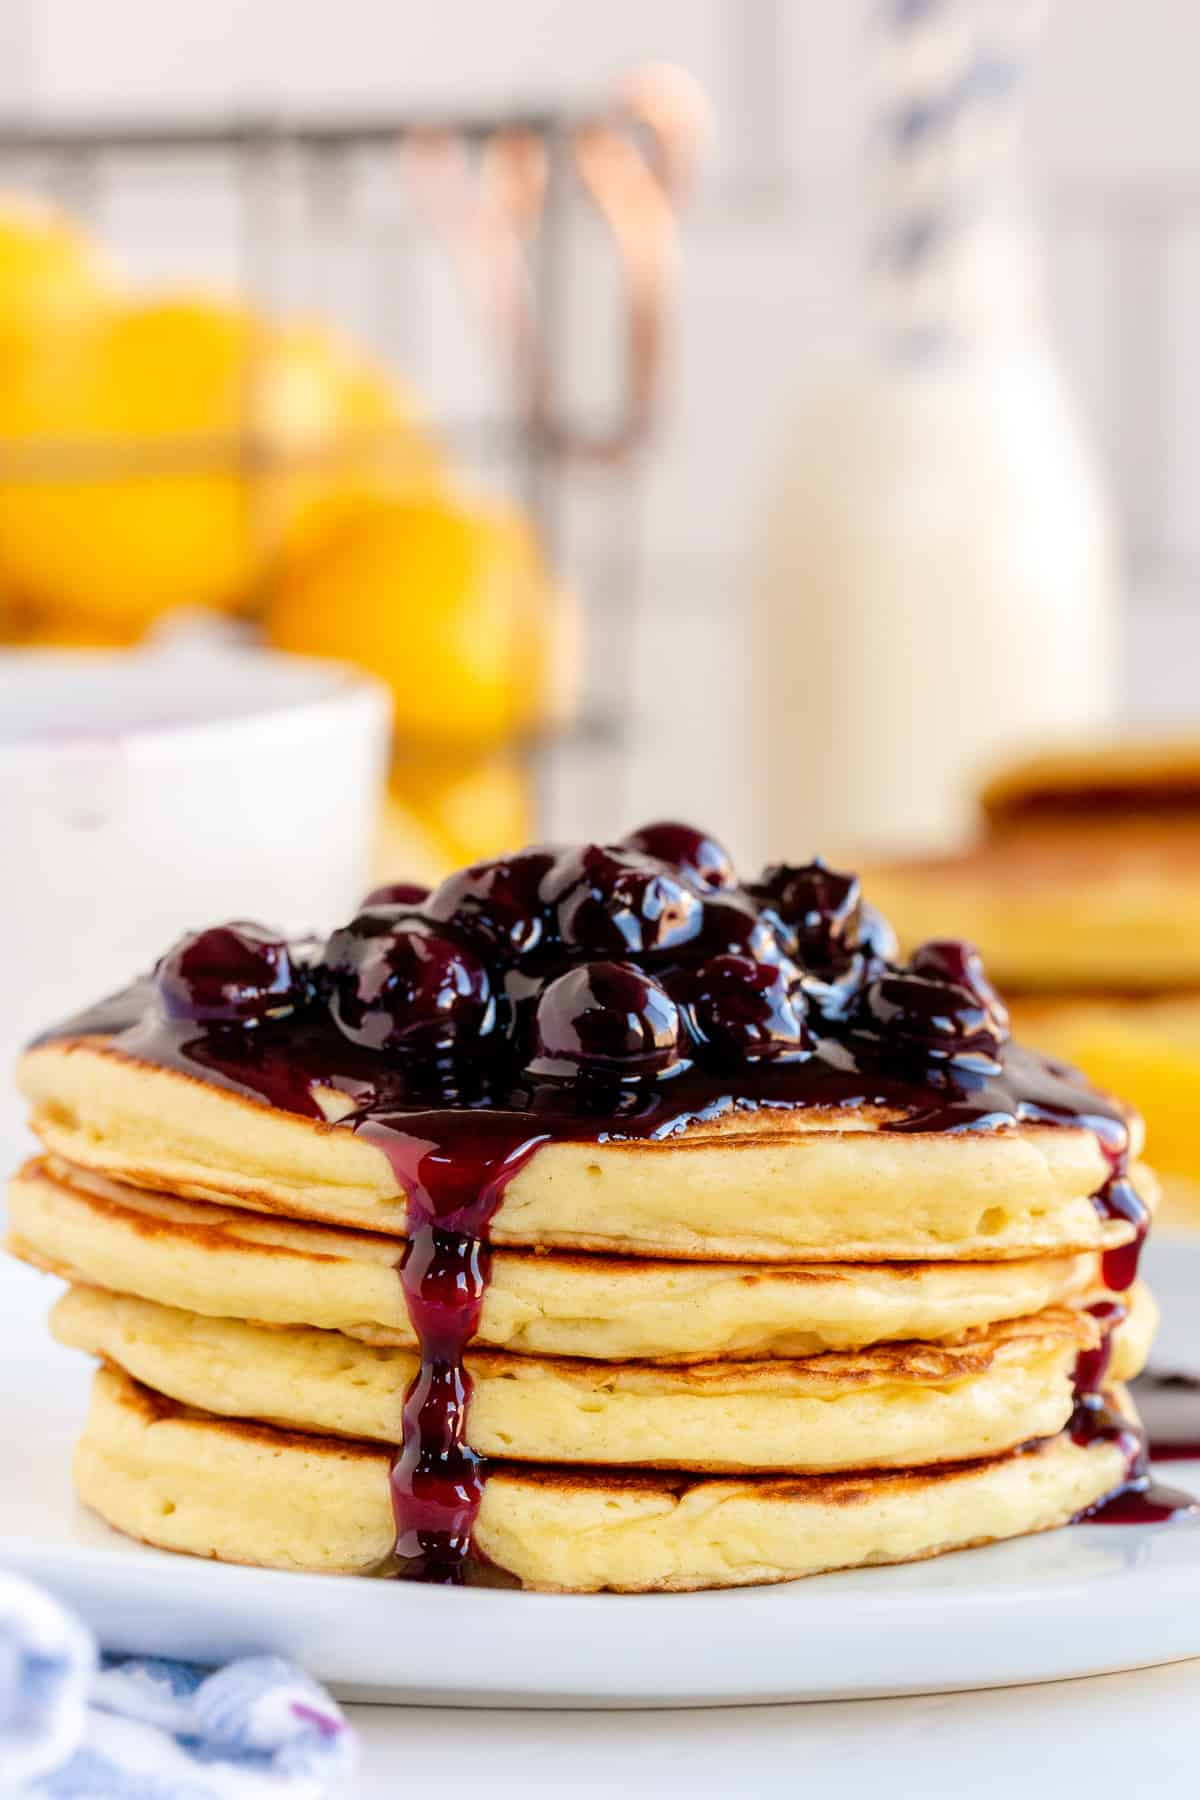 A stack of pancakes with blueberry sauce running down the sides.